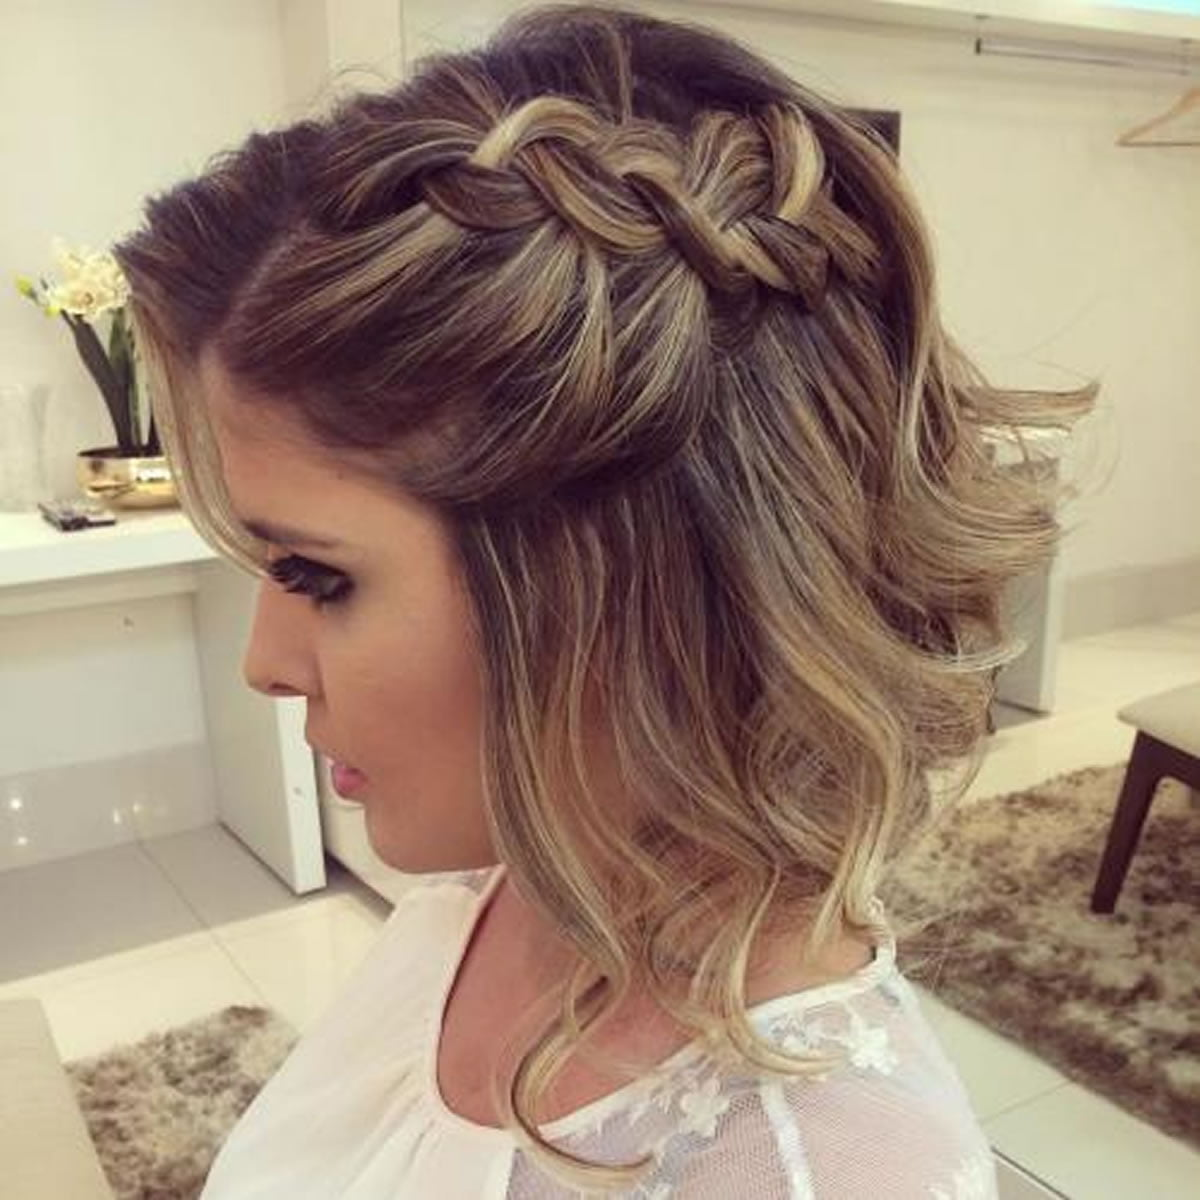 Hairstyles at the prom in 2019 for grades 9 and 11 17